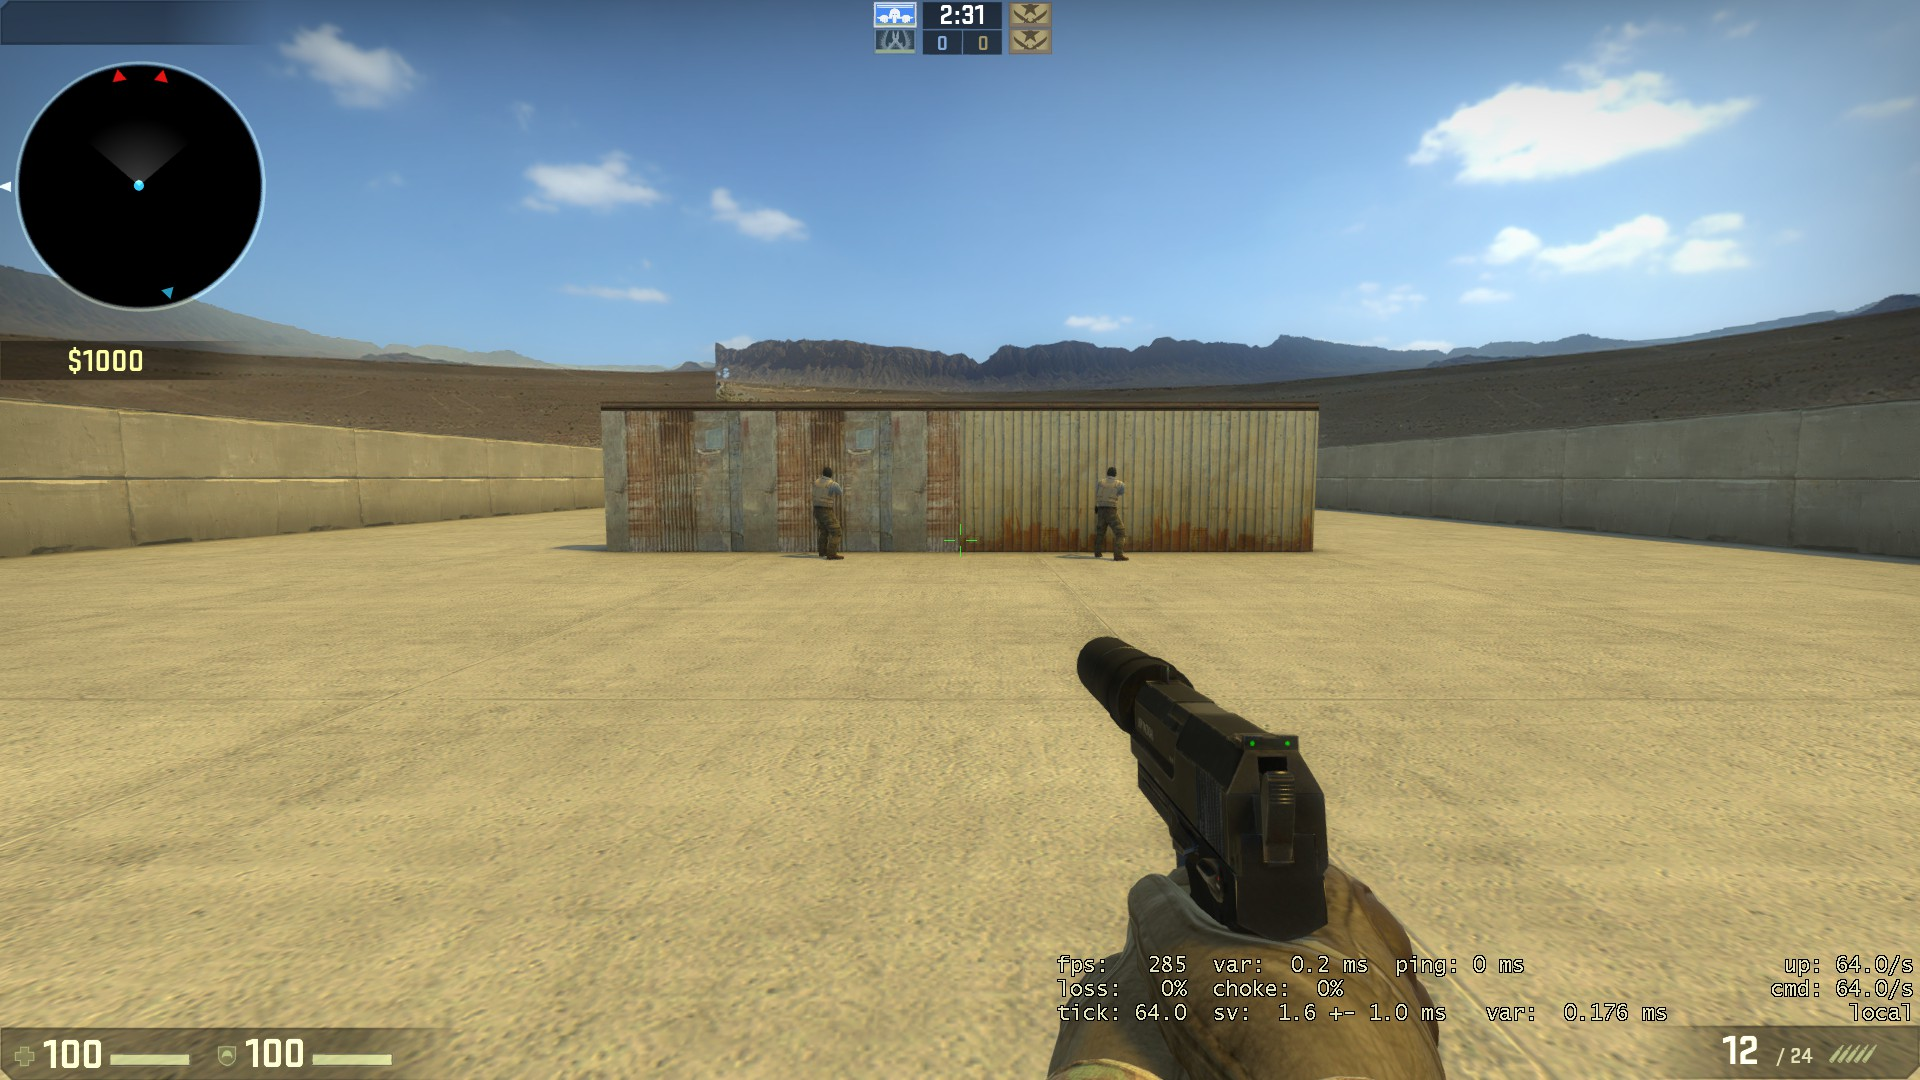 how to change level to competitive in csgo